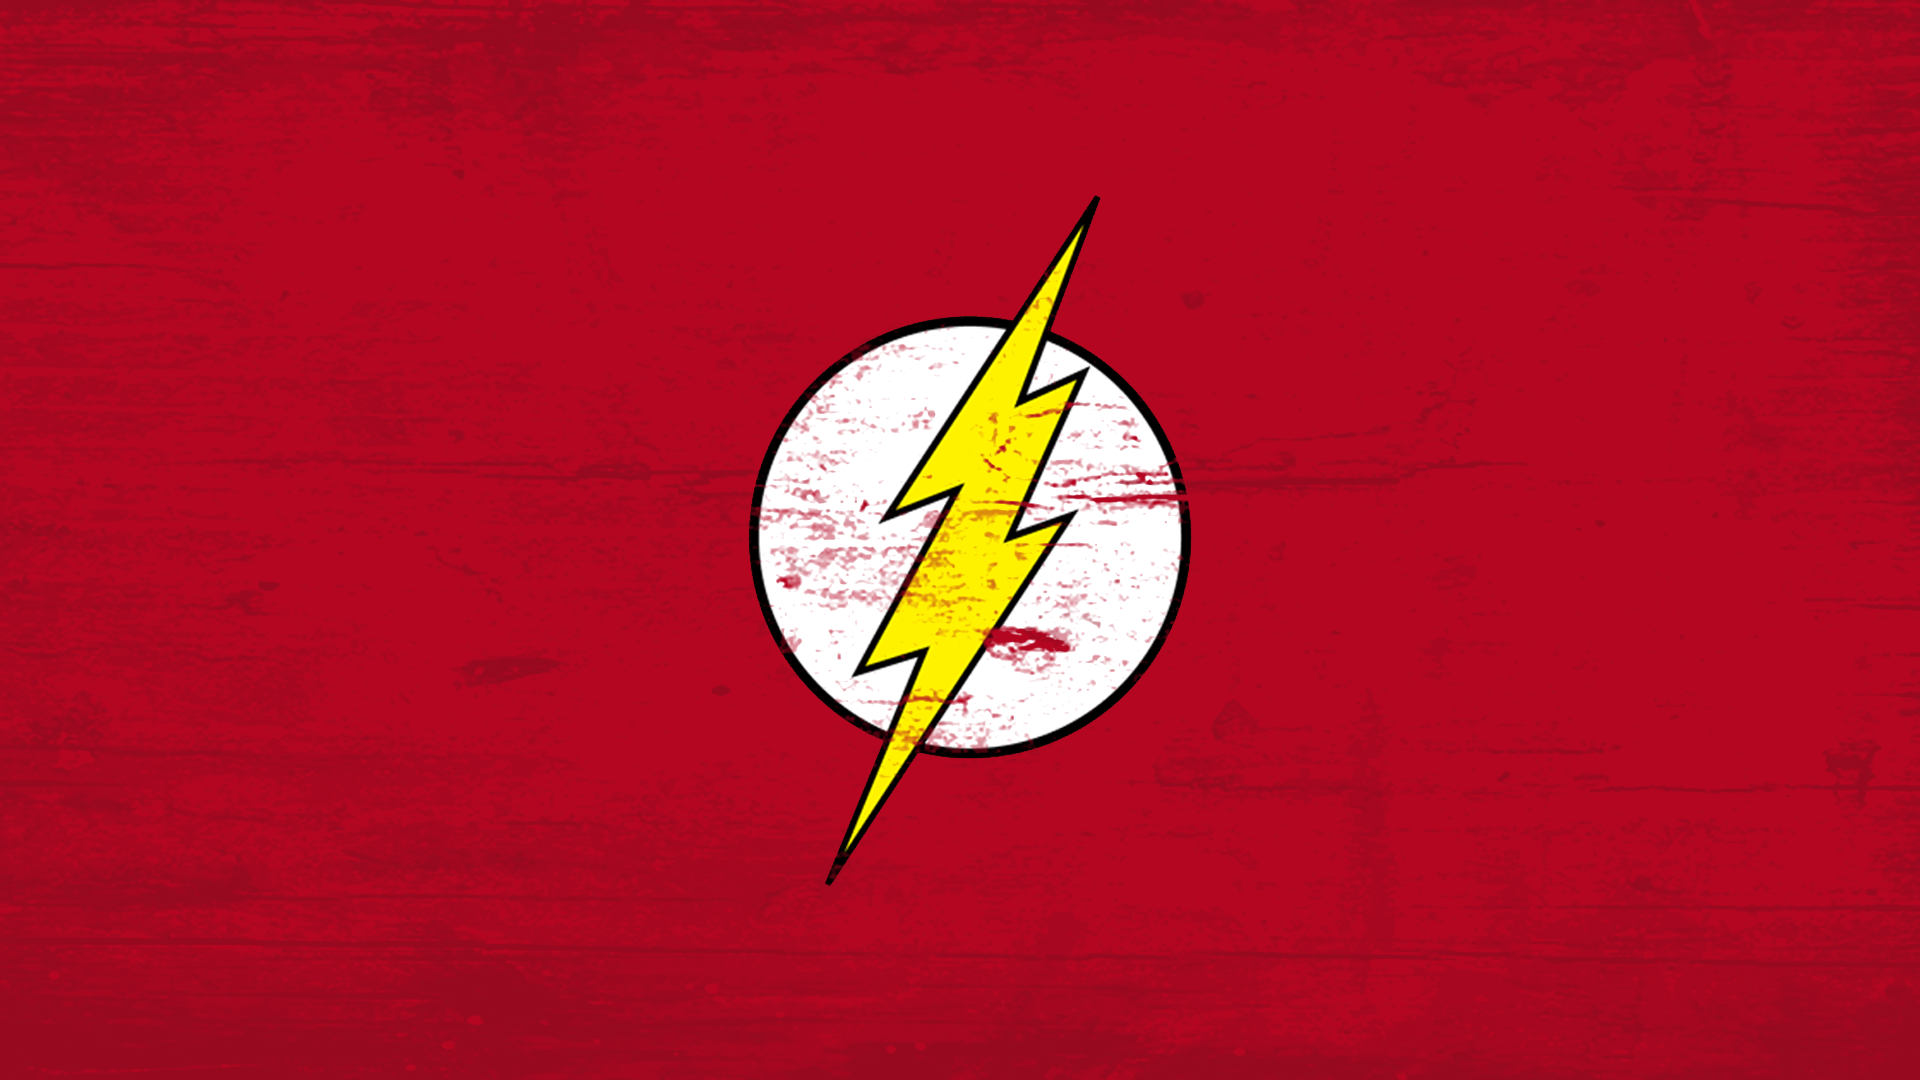 Flash Logo [1920x1080]   RedditLurker All Reddit Images 1920x1080